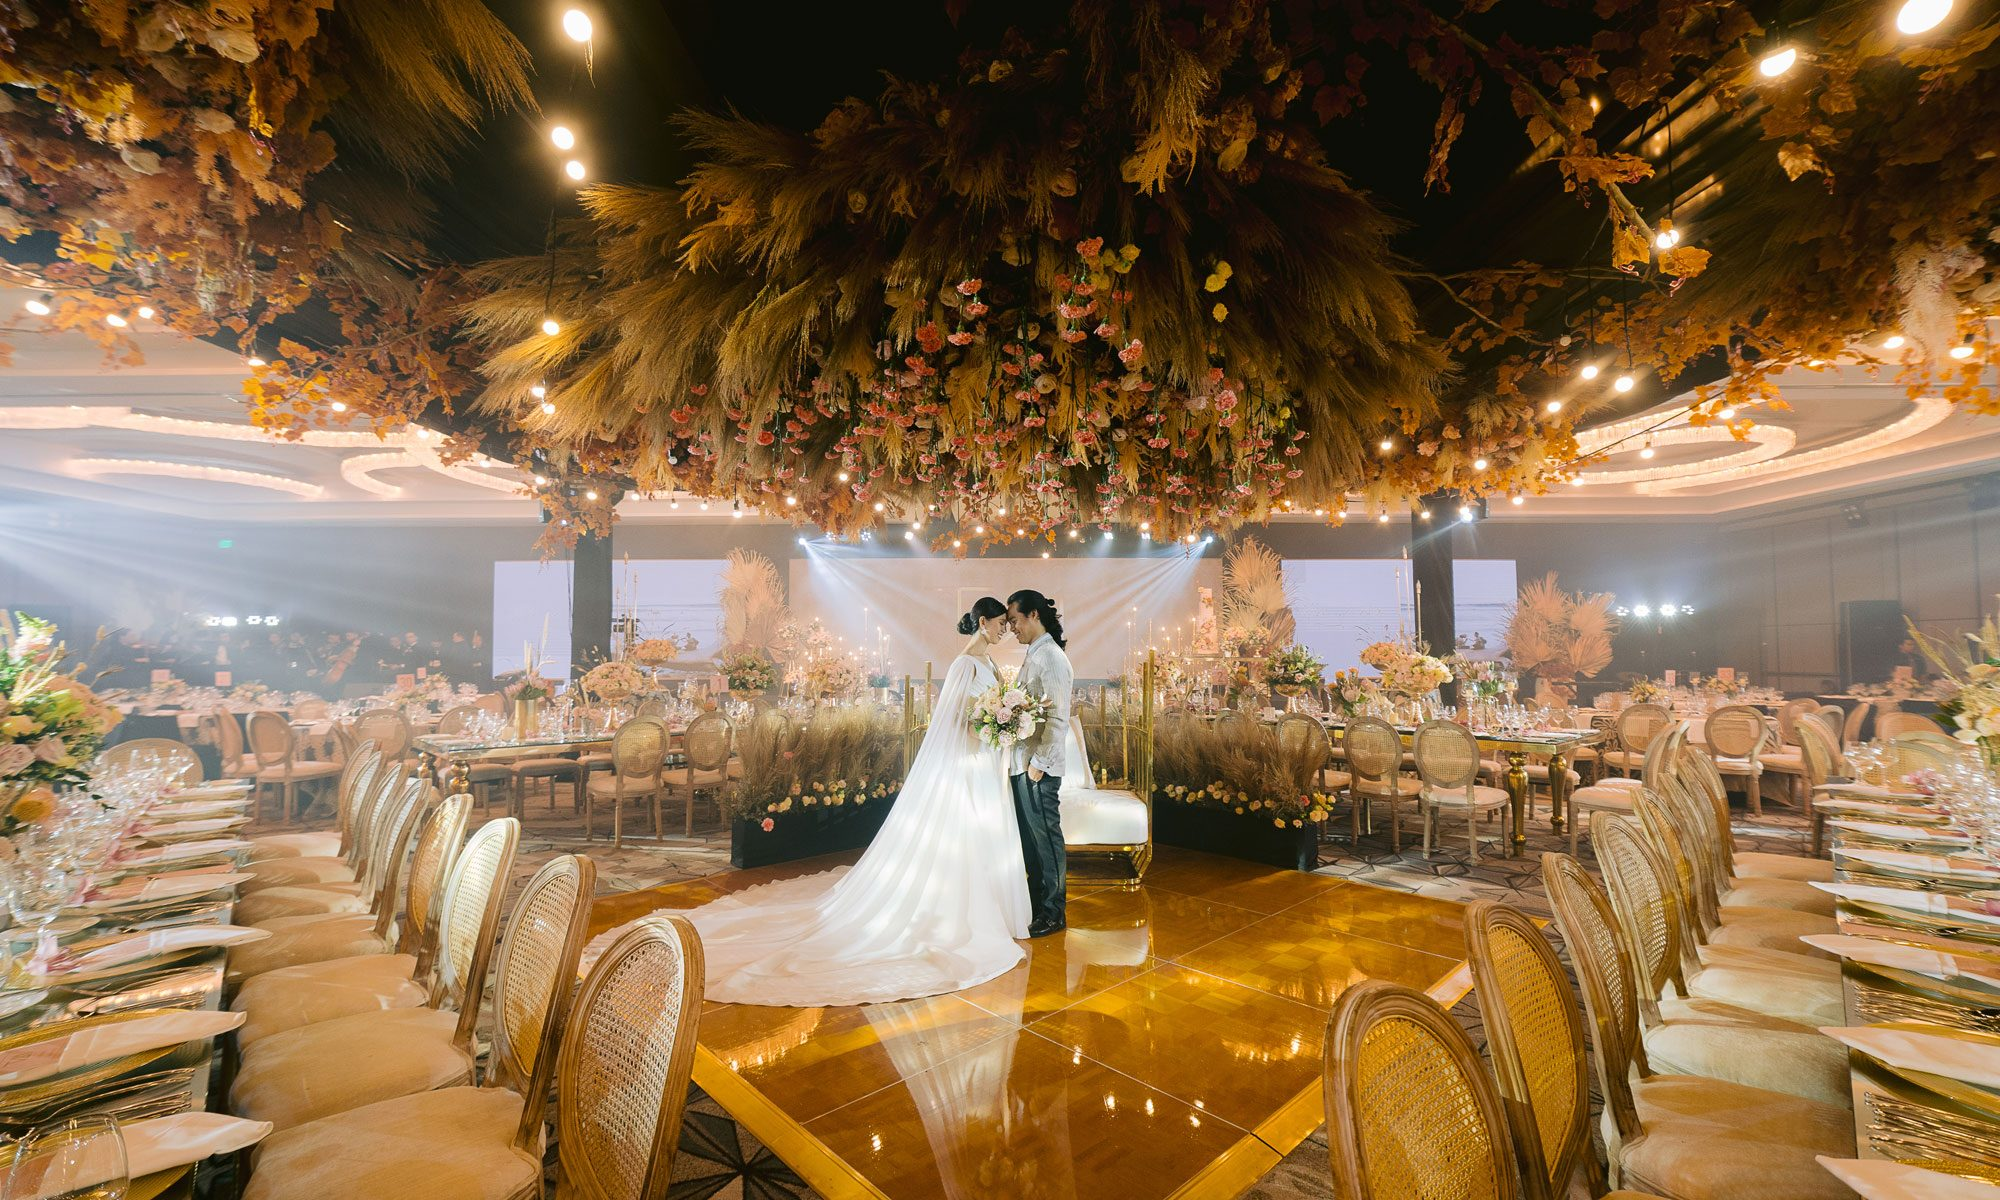 dusit-thani-residence-davao-Events-Dusit-Thani-Grand-Ballroom-Wedding